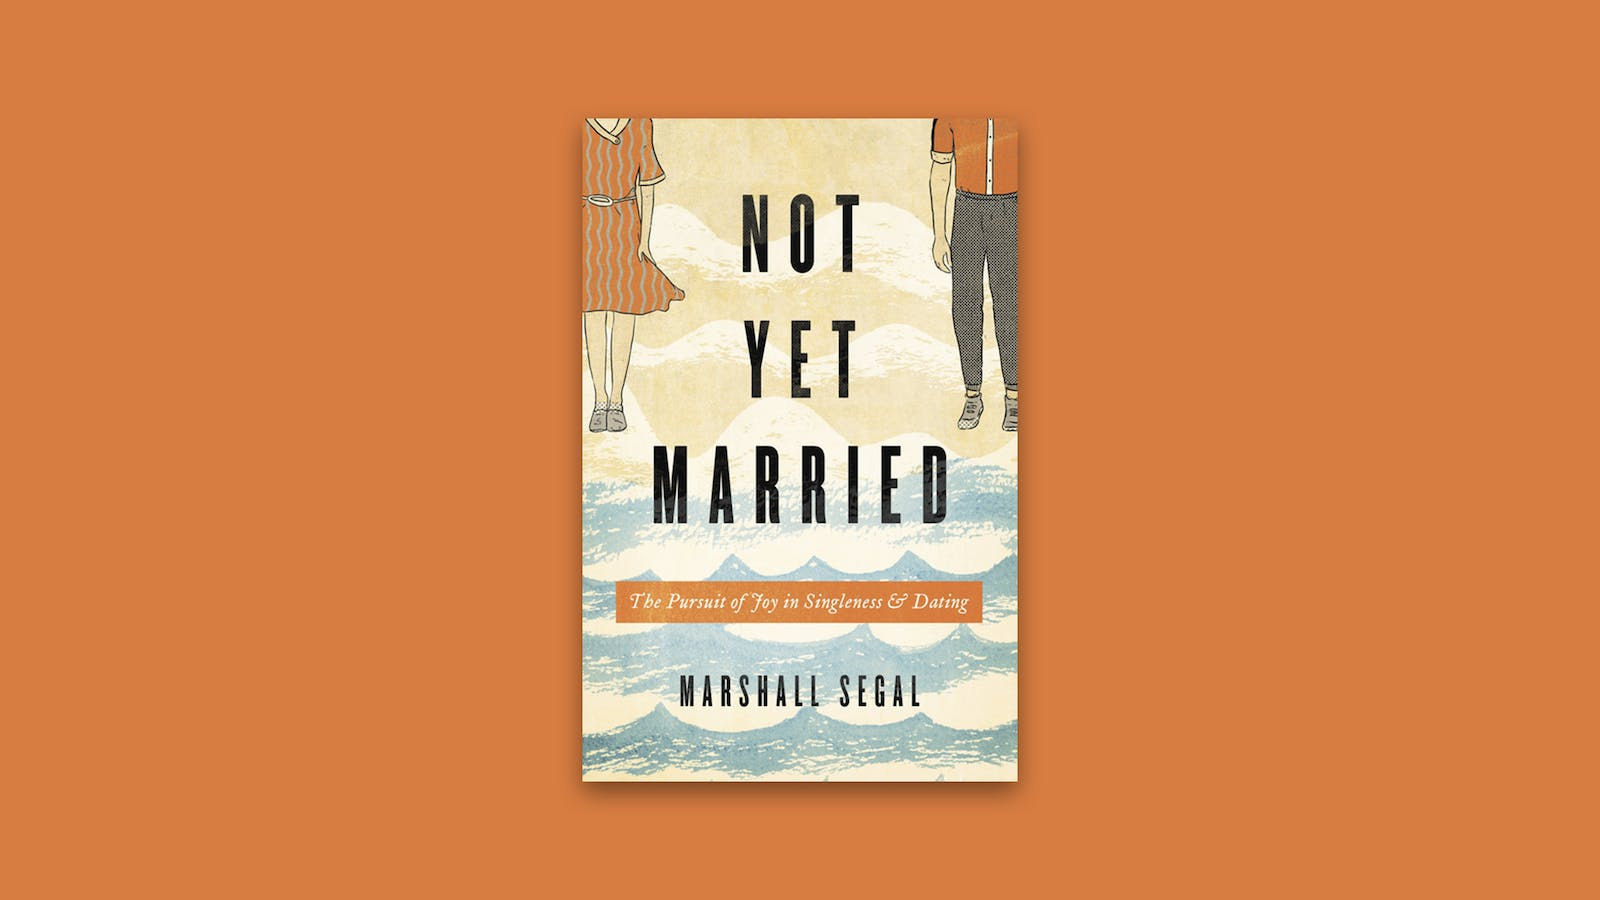 Free ebook not yet married desiring god editors note over the weekend of june 2324 desiring god offered not yet married free of charge in three digital formats pdf mobi and epub ccuart Image collections